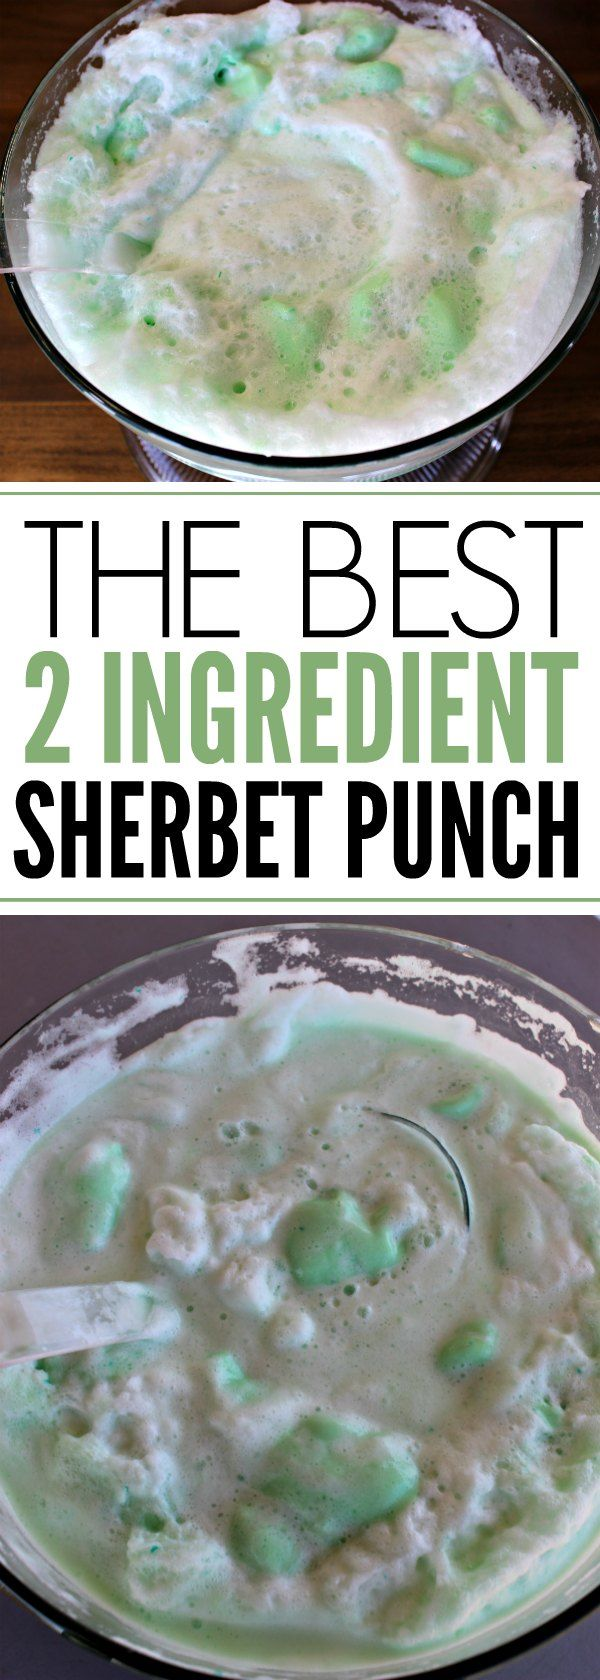 Try this quick and easy sherbet punch recipe. It is the best party punch recipe. Just 2 ingredients is all you need for the best sherbert punch.